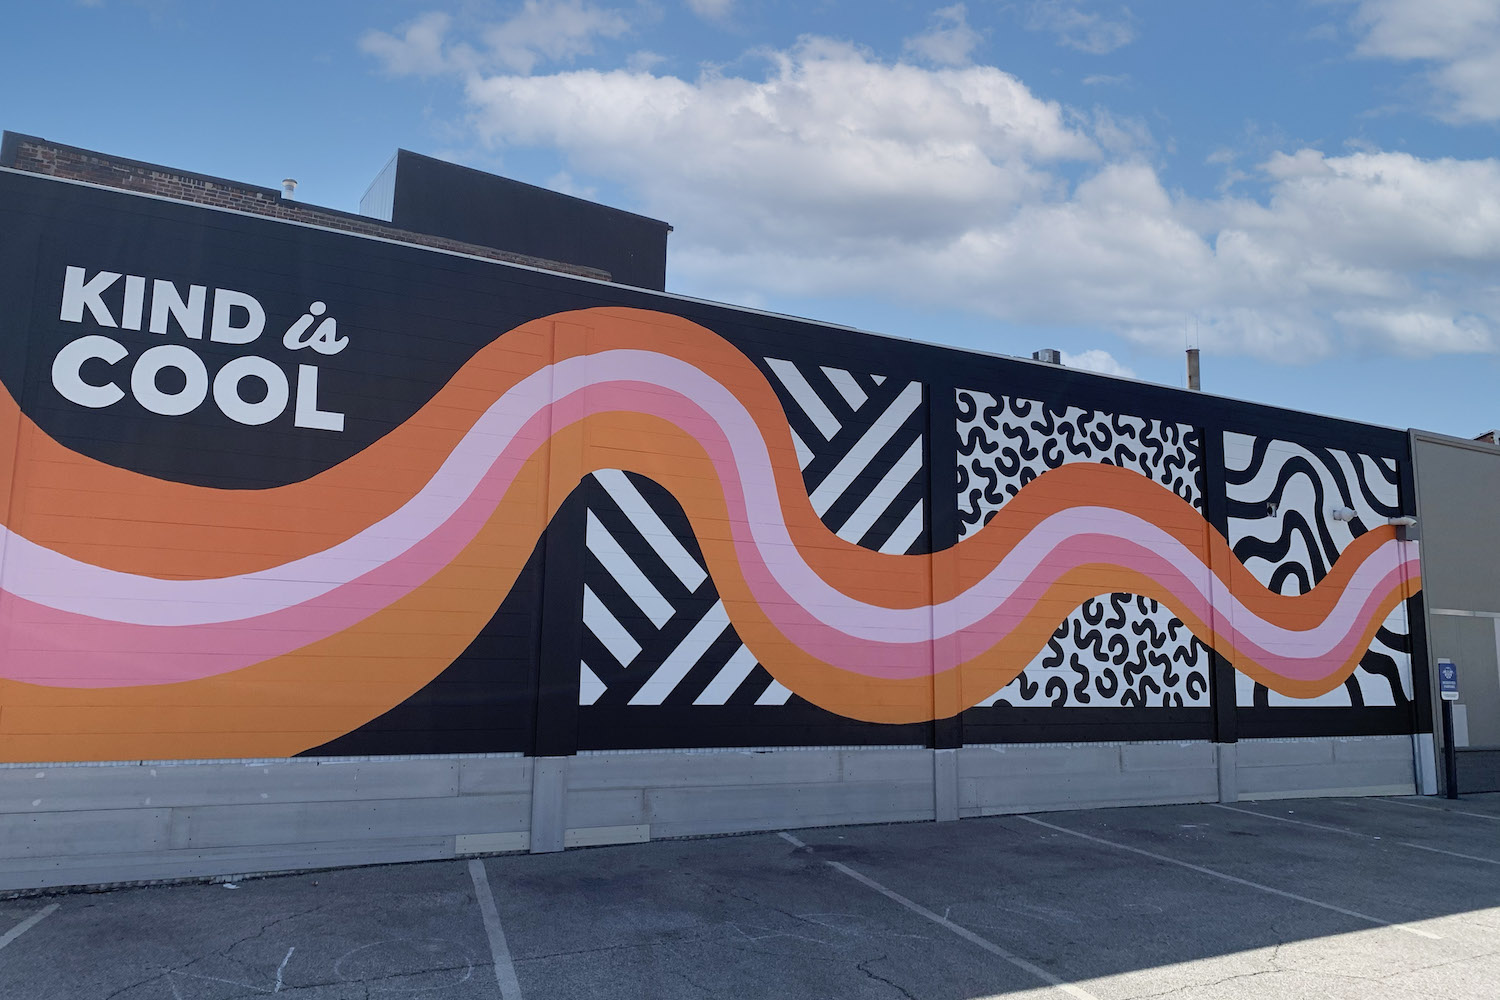 Kind is Cool mural at Project7 Design in Des Moines, Iowa